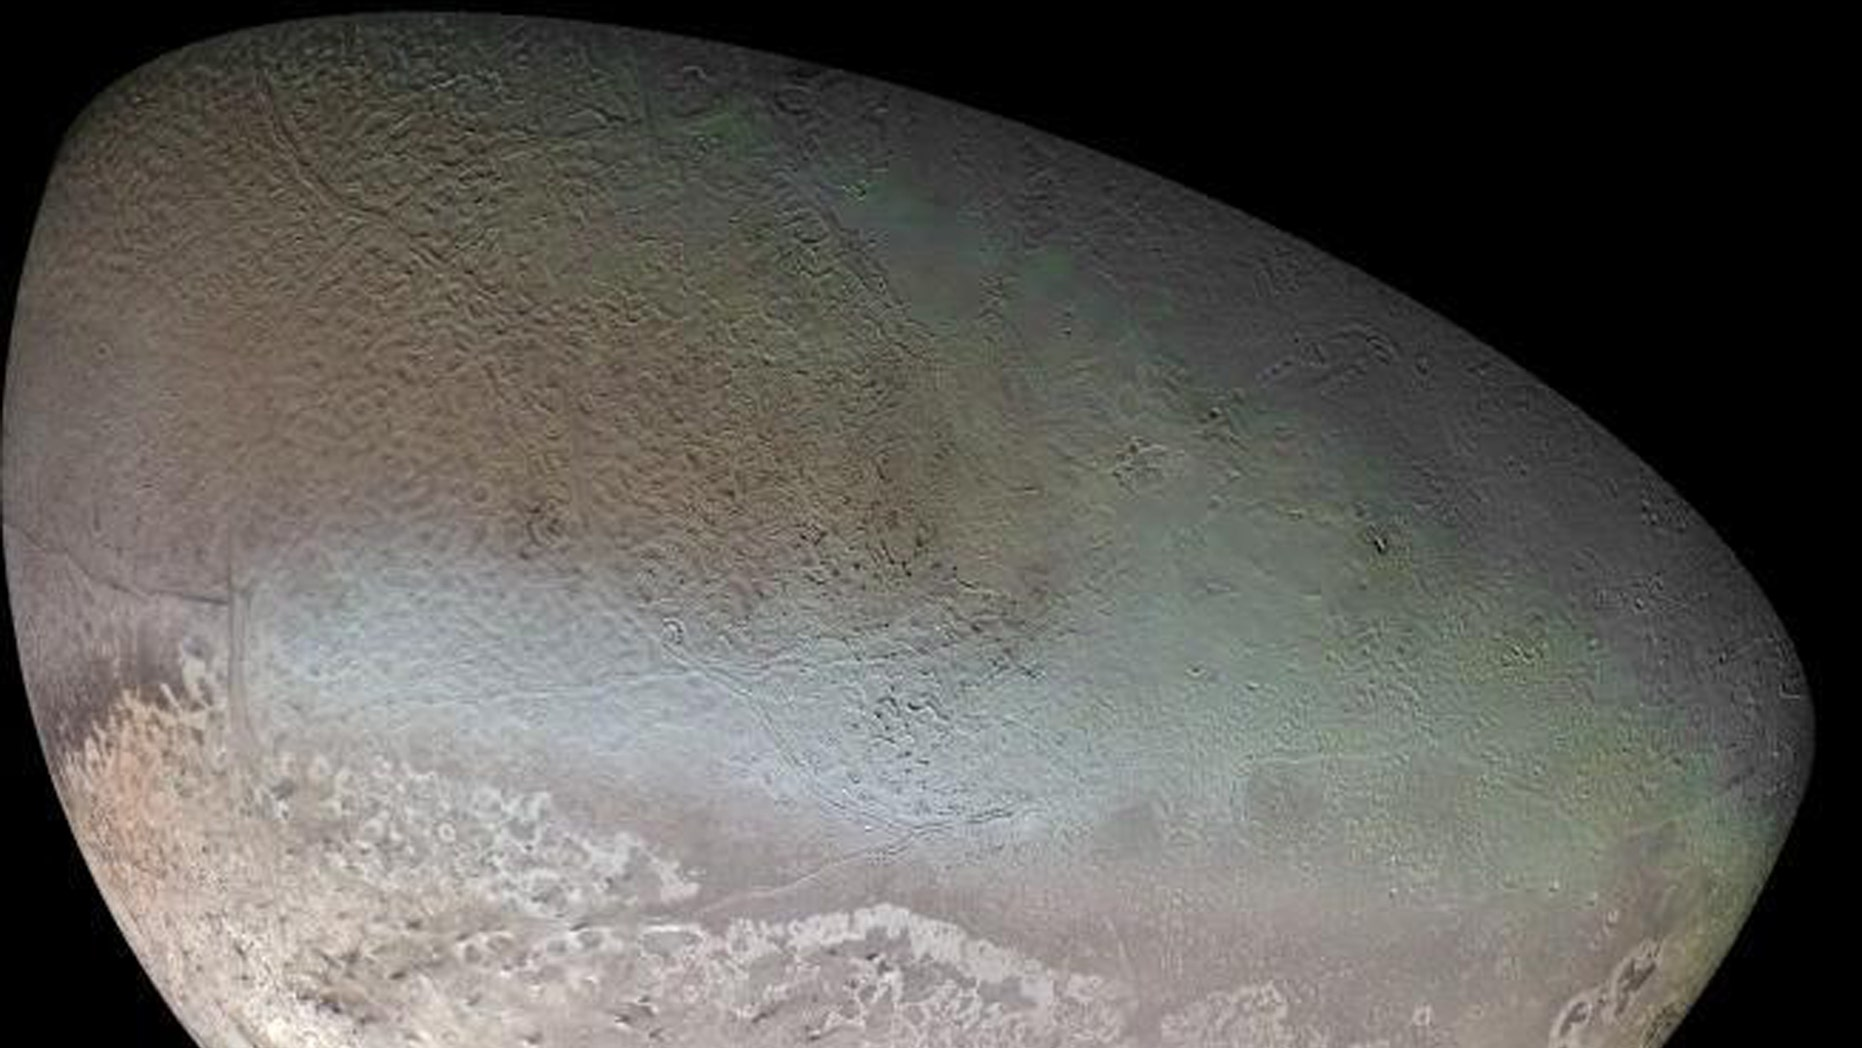 Triton's global color mosaic, taken in 1989 by Voyager 2 during the Neptune flight. (Author: NASA / JPL / USGS)